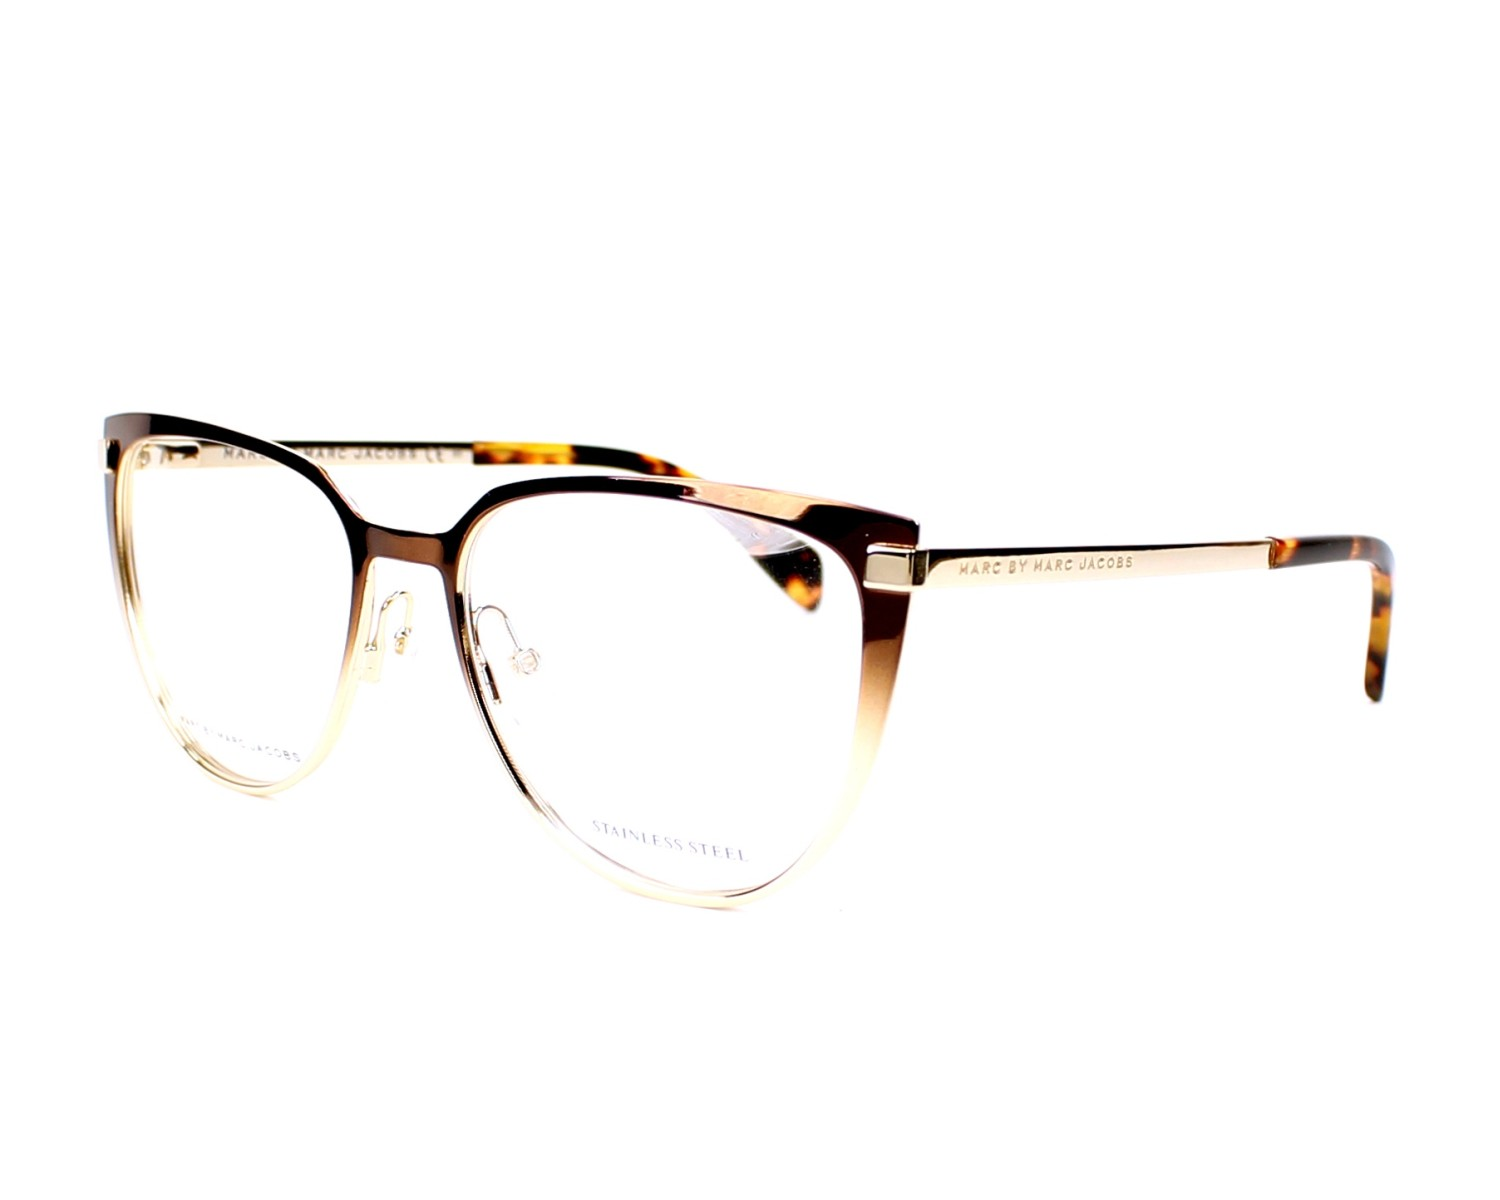 Order your Marc by Marc Jacobs eyeglasses MMJ 657 LSR 54 today